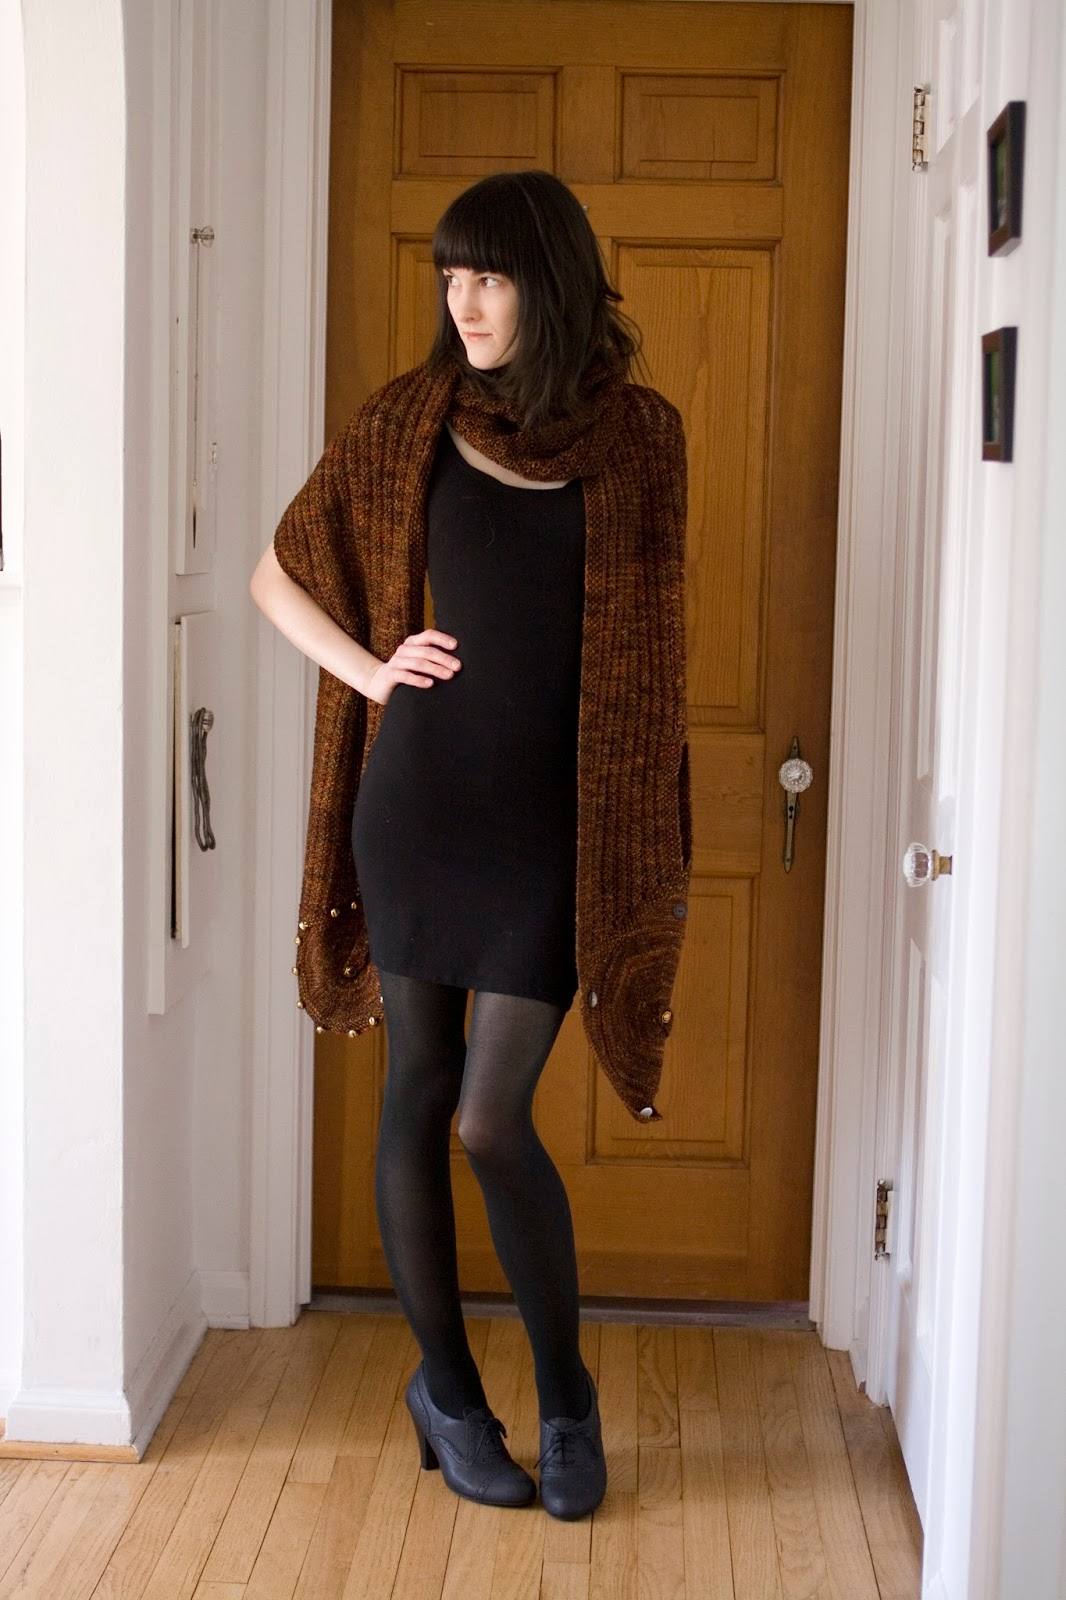 Dull Roar: Style your Apocalypse (Doomsday Knits)